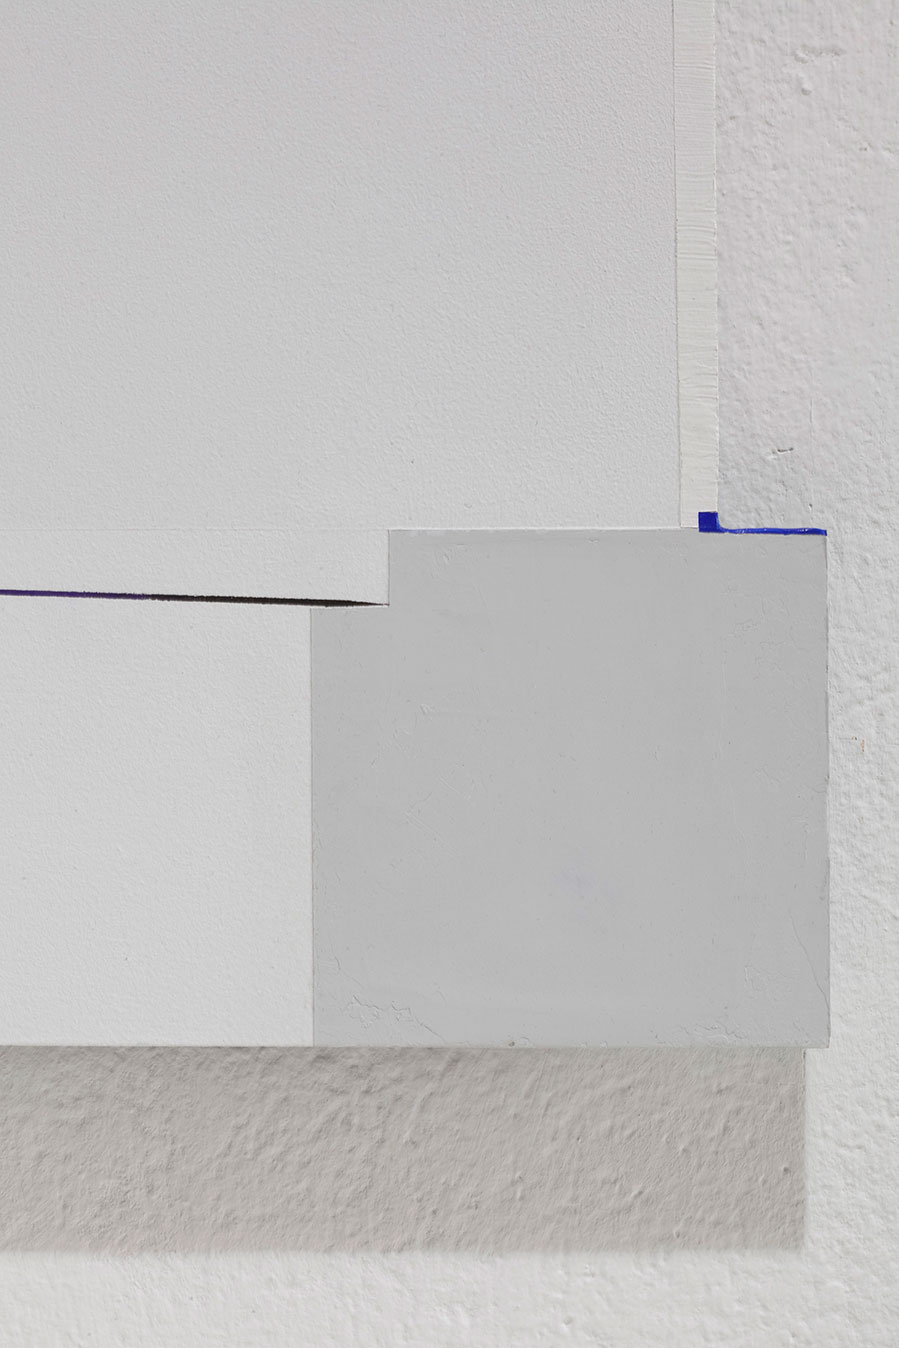 4.Untitled%22#8, 2015_acrylic and epoxi color on metal sheet,110x100cm_detail3.jpg